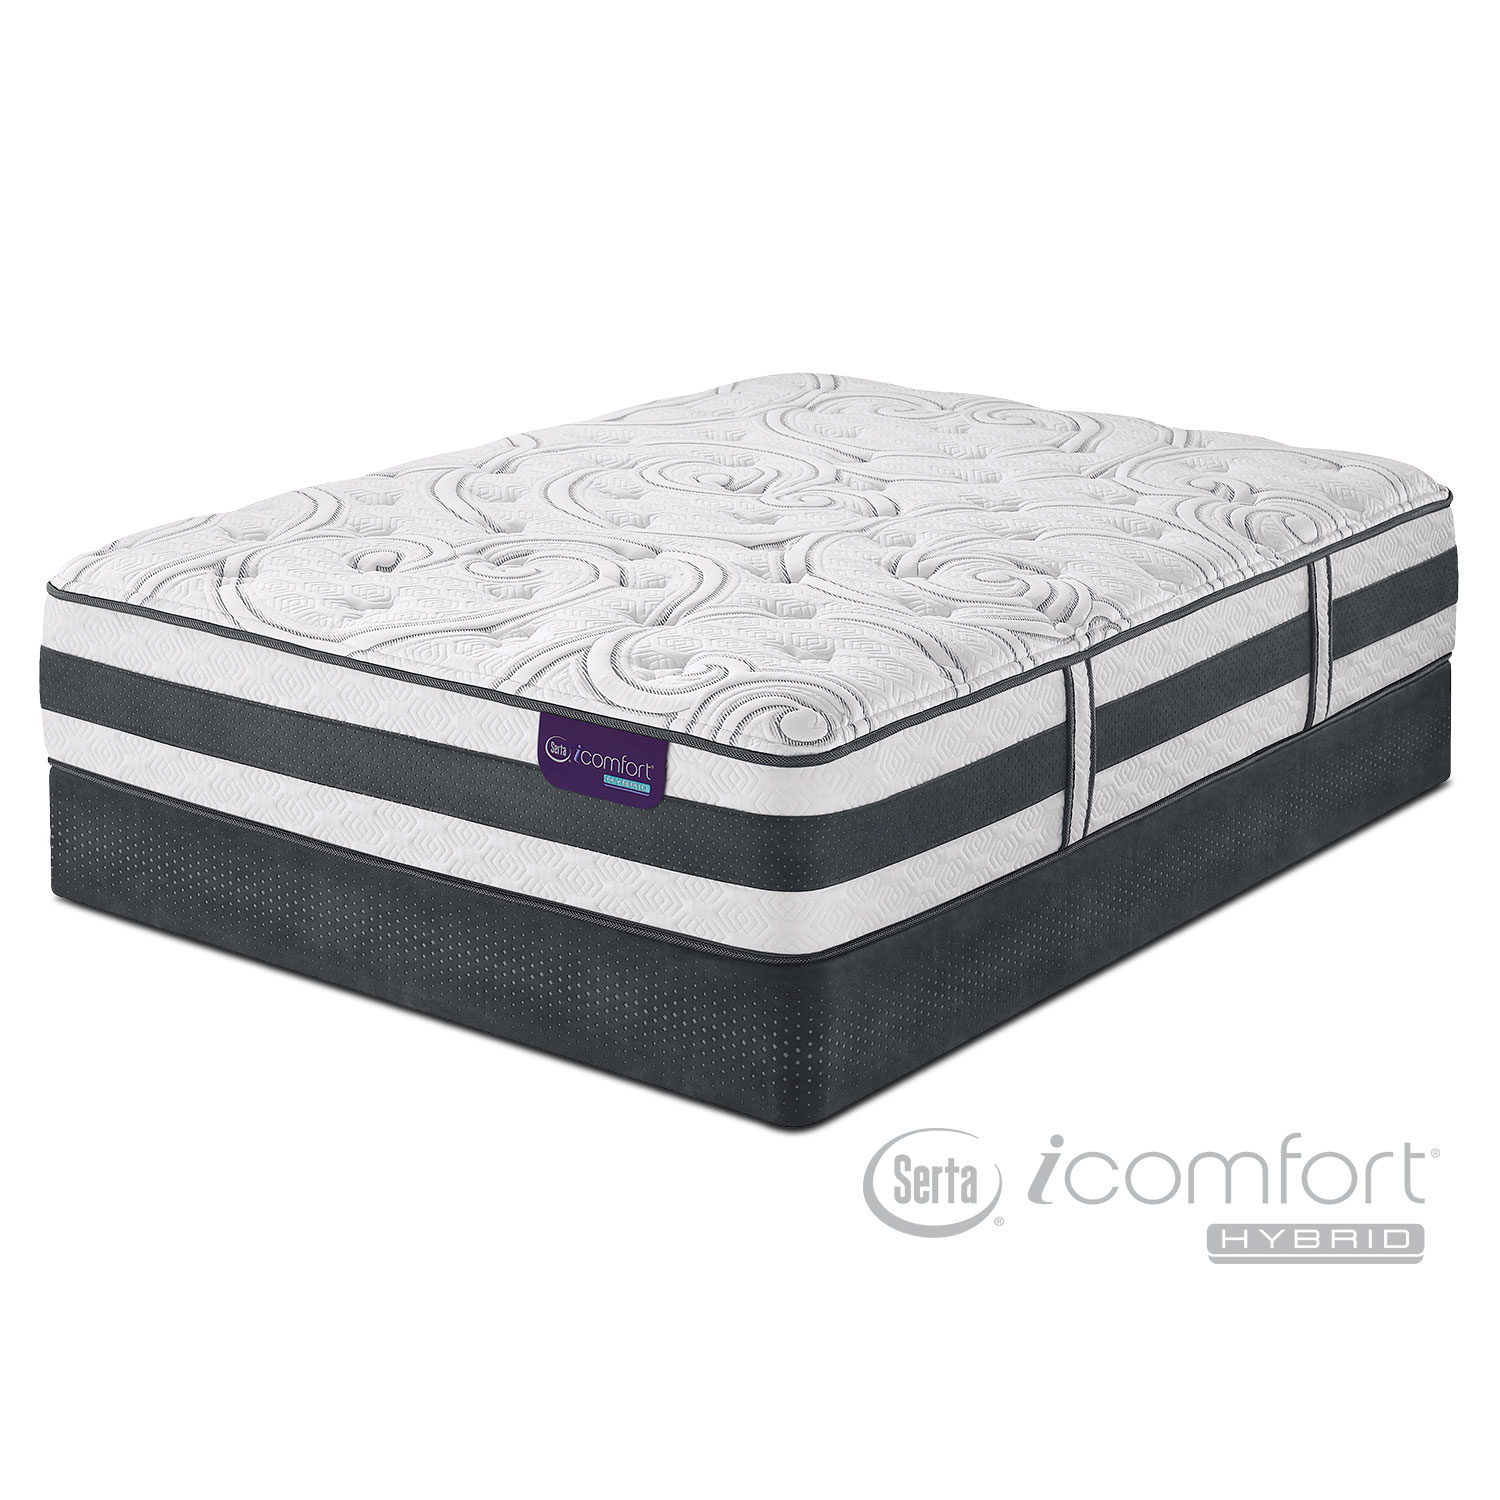 Mattresses and Bedding - Applause II Plush Queen Mattress/Low-Profile Foundation Set